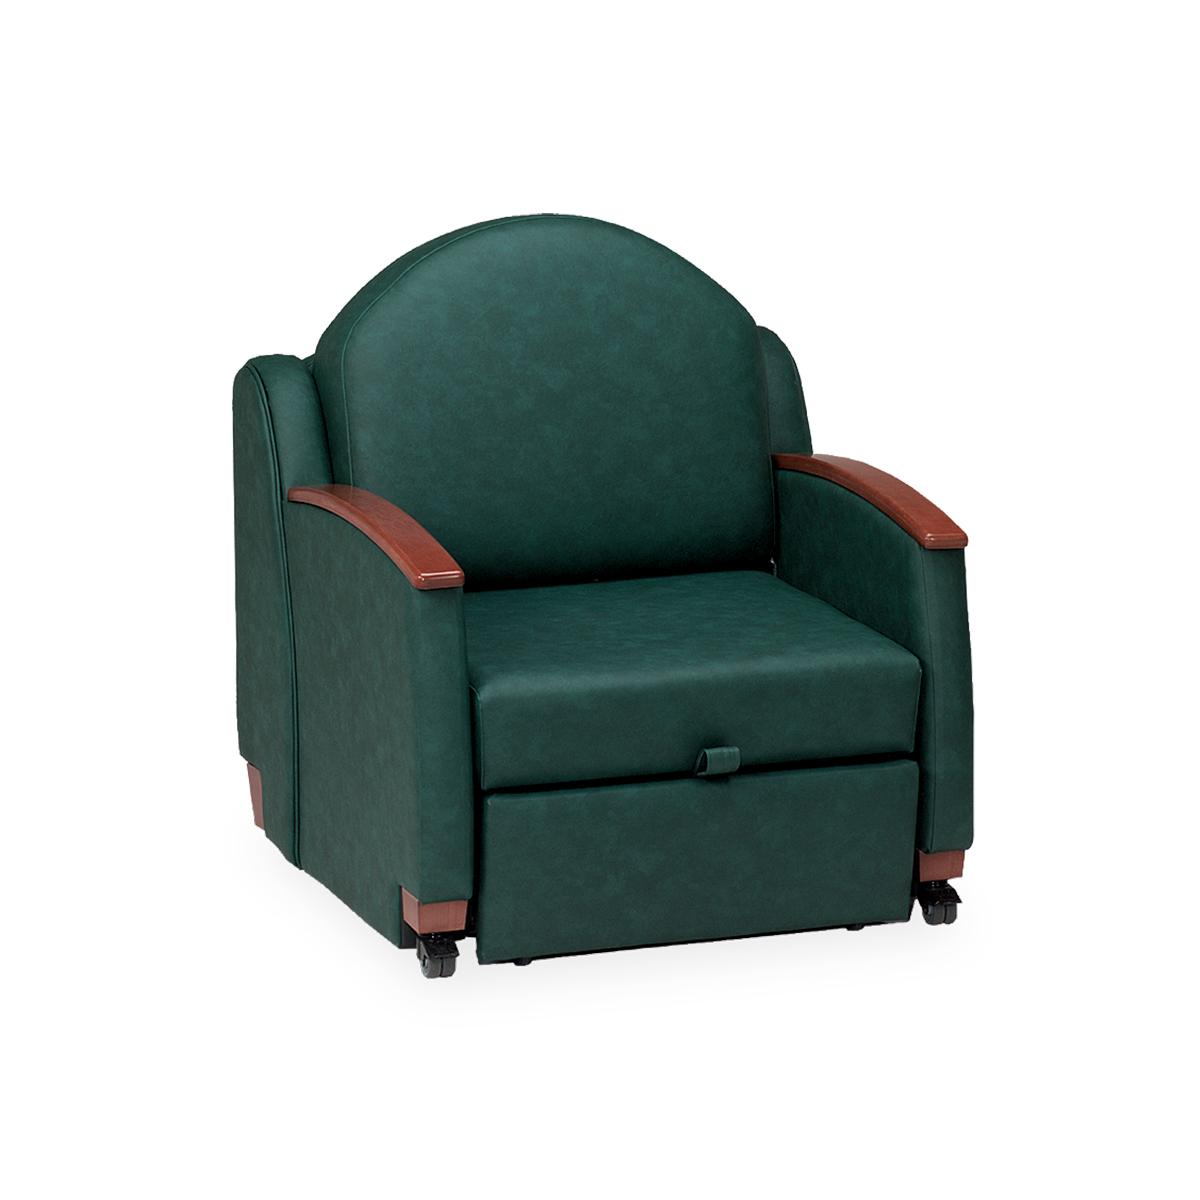 Hillrom Classic Sleeper Chair in dark green